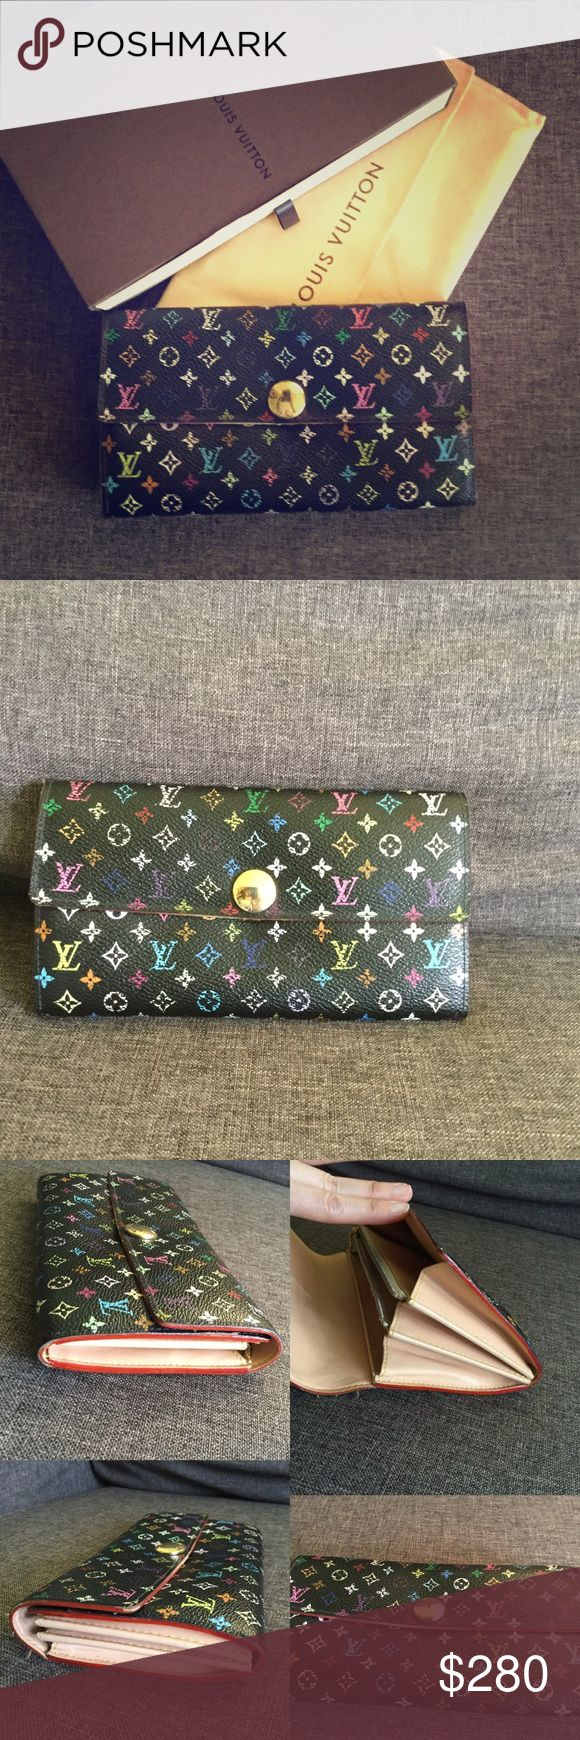 Louis Vuitton Multicolor Wallet Item: Preowned Authentic Louis Vuitton Multicolor Wallet, Made in France TH0096, features: 6 credit card slot, 1 paper, 2 cash slot and zip coin pocket. --Condition: Exterior: scratches, rubbing, peeling of color. Tears on edges. Interior: dirt streak stain, pen mark. NO bad odor. Metals: scratches, discoloration. Seller note to buyers: Item is used therefore expect signs of wear but overall it is in GOOD condition and has NO major issue. The wallet will come…